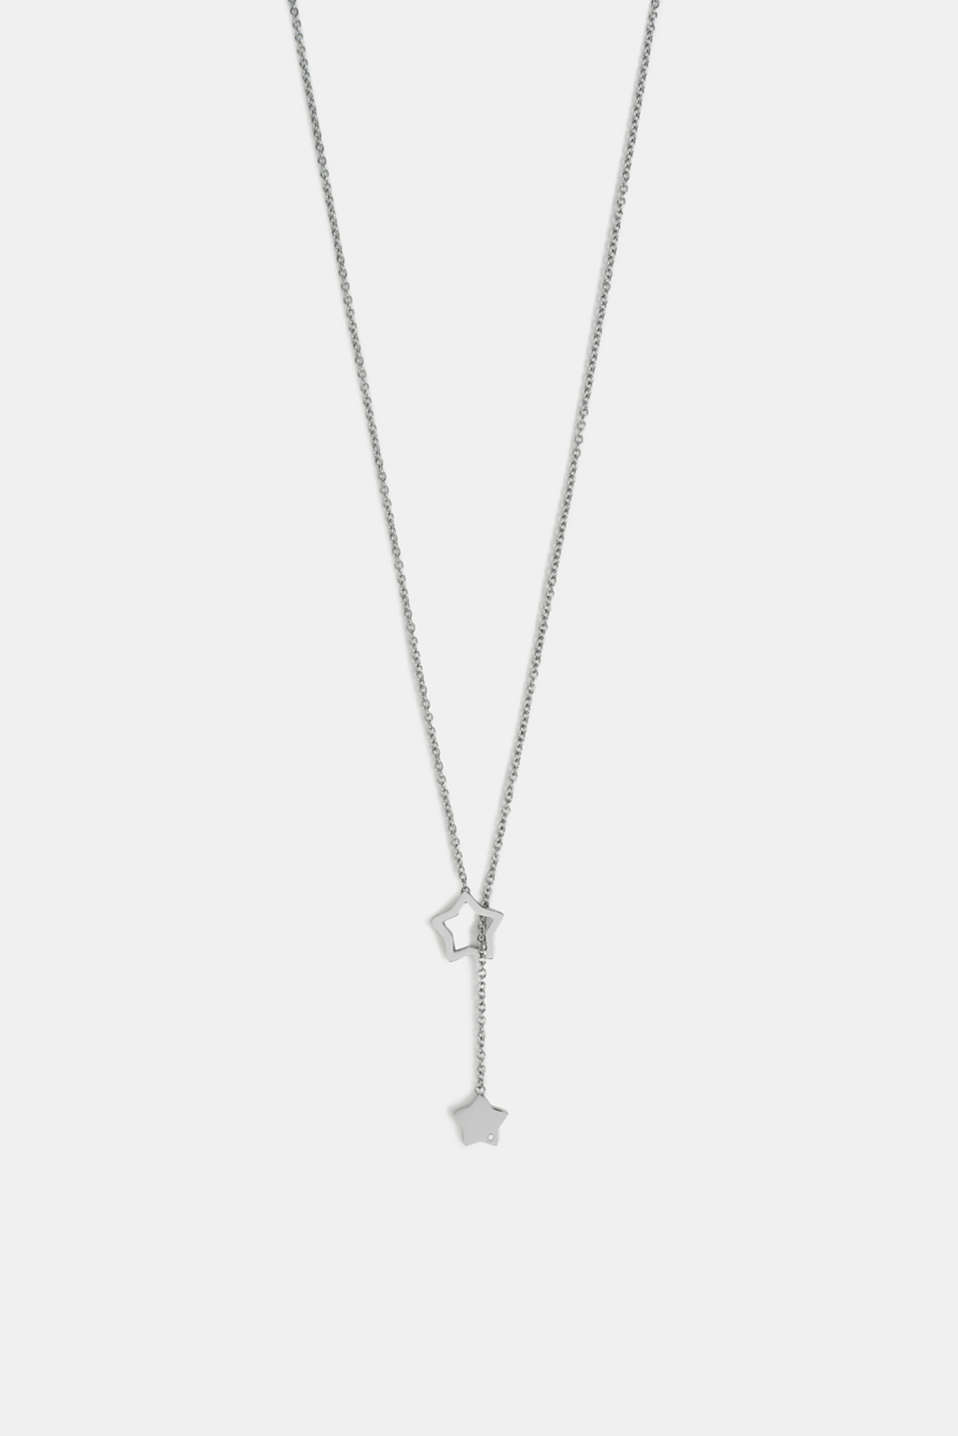 Esprit - Pendant necklace with star charms, stainless steel